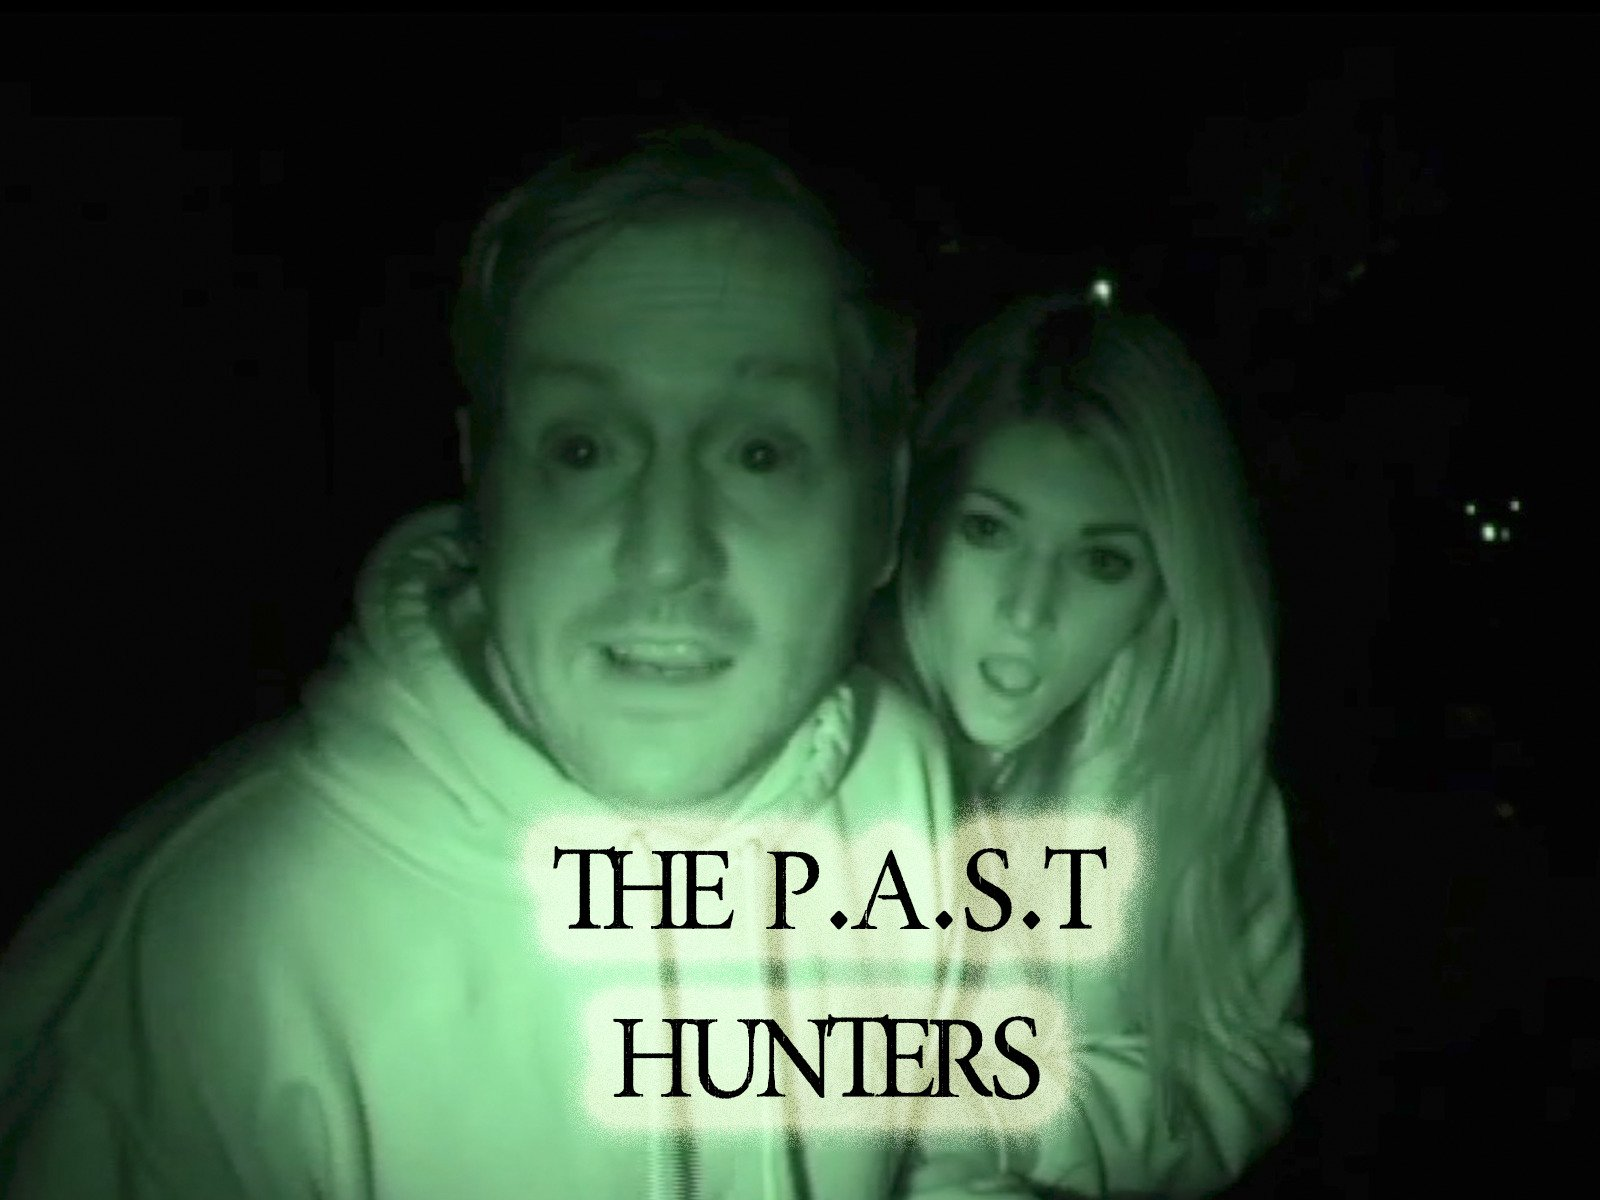 The P.A.S.T Hunters